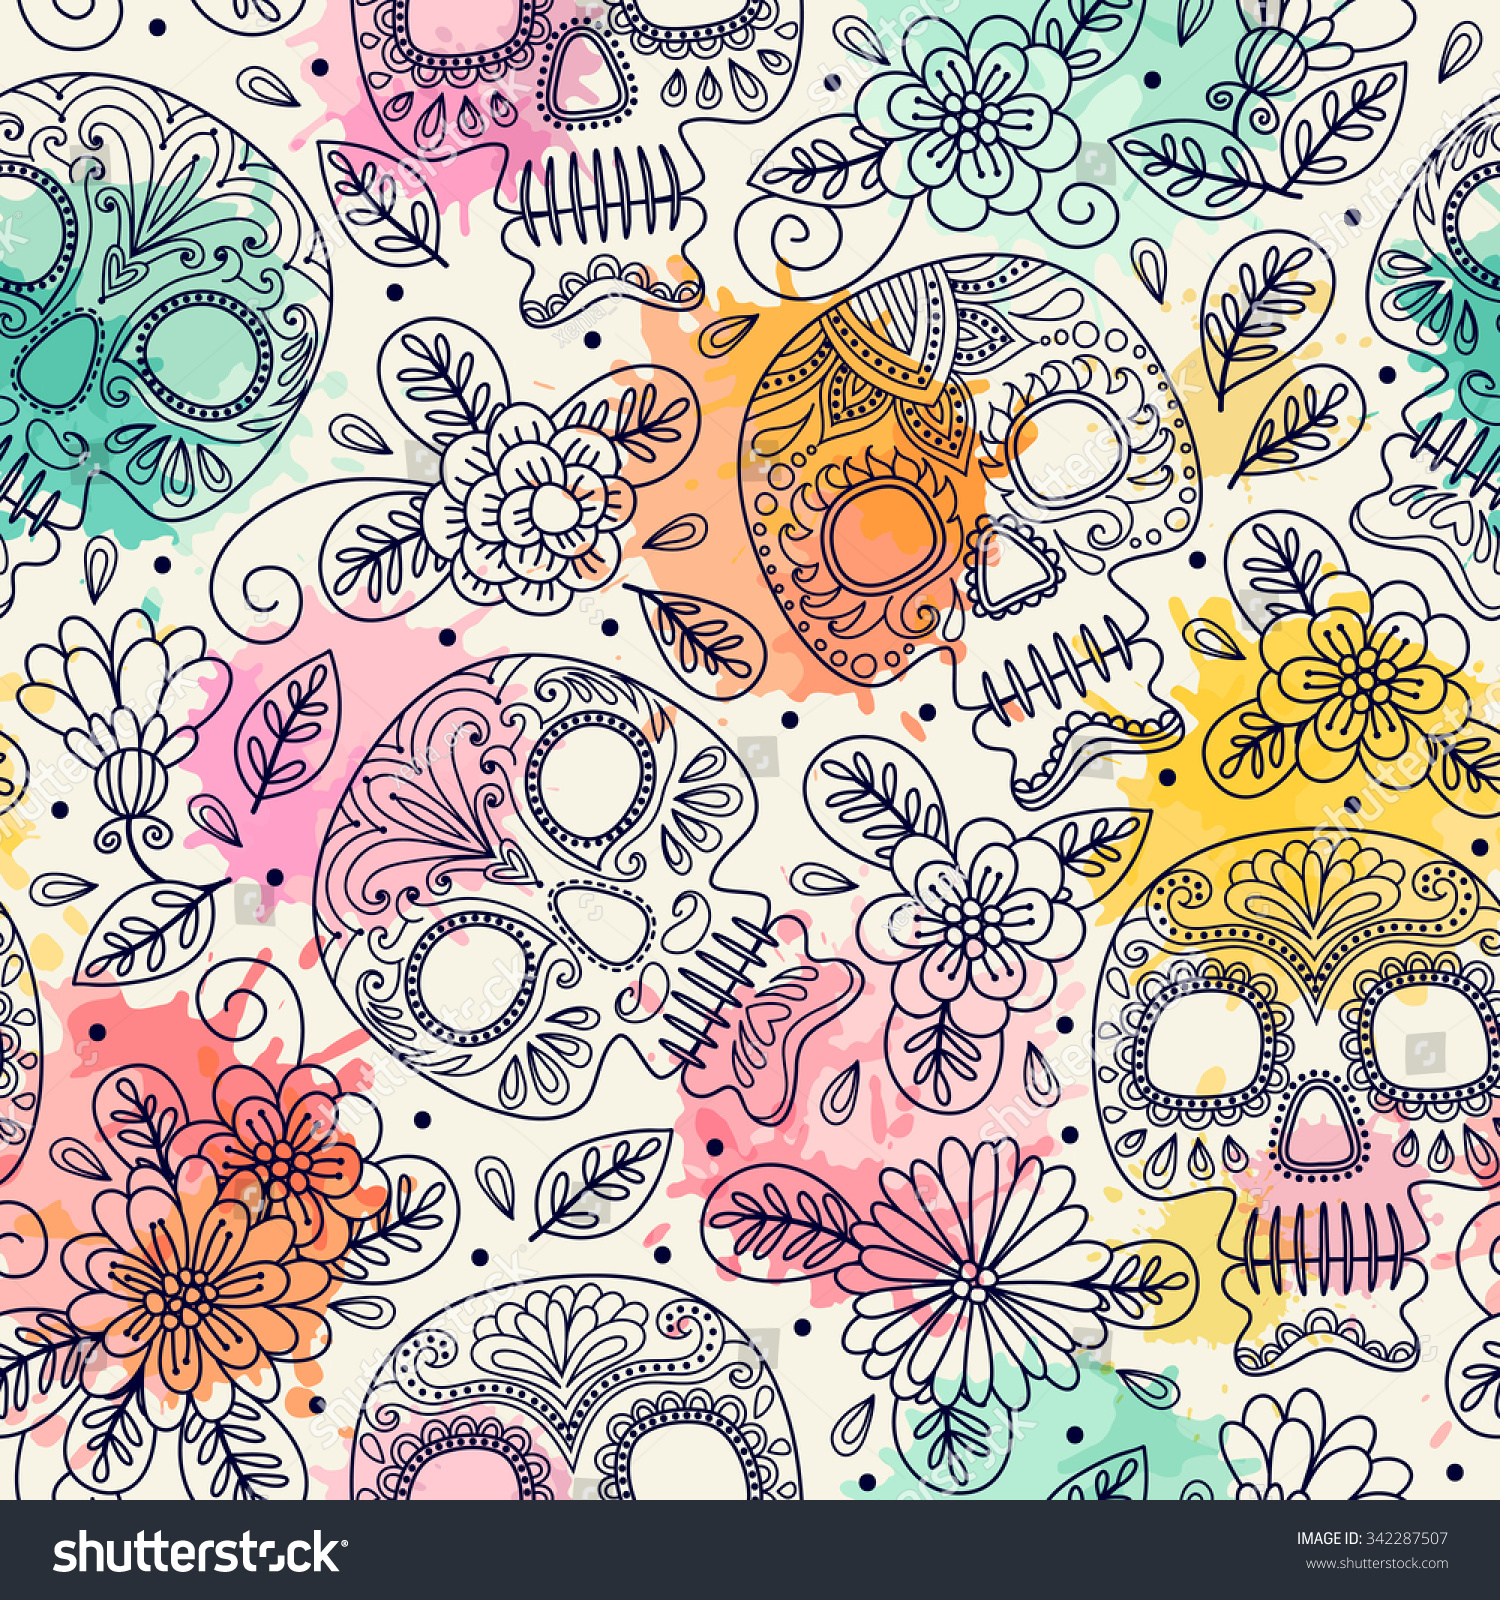 Skull and Flowers Seamless Background Mexican day of the dead Freehand drawing